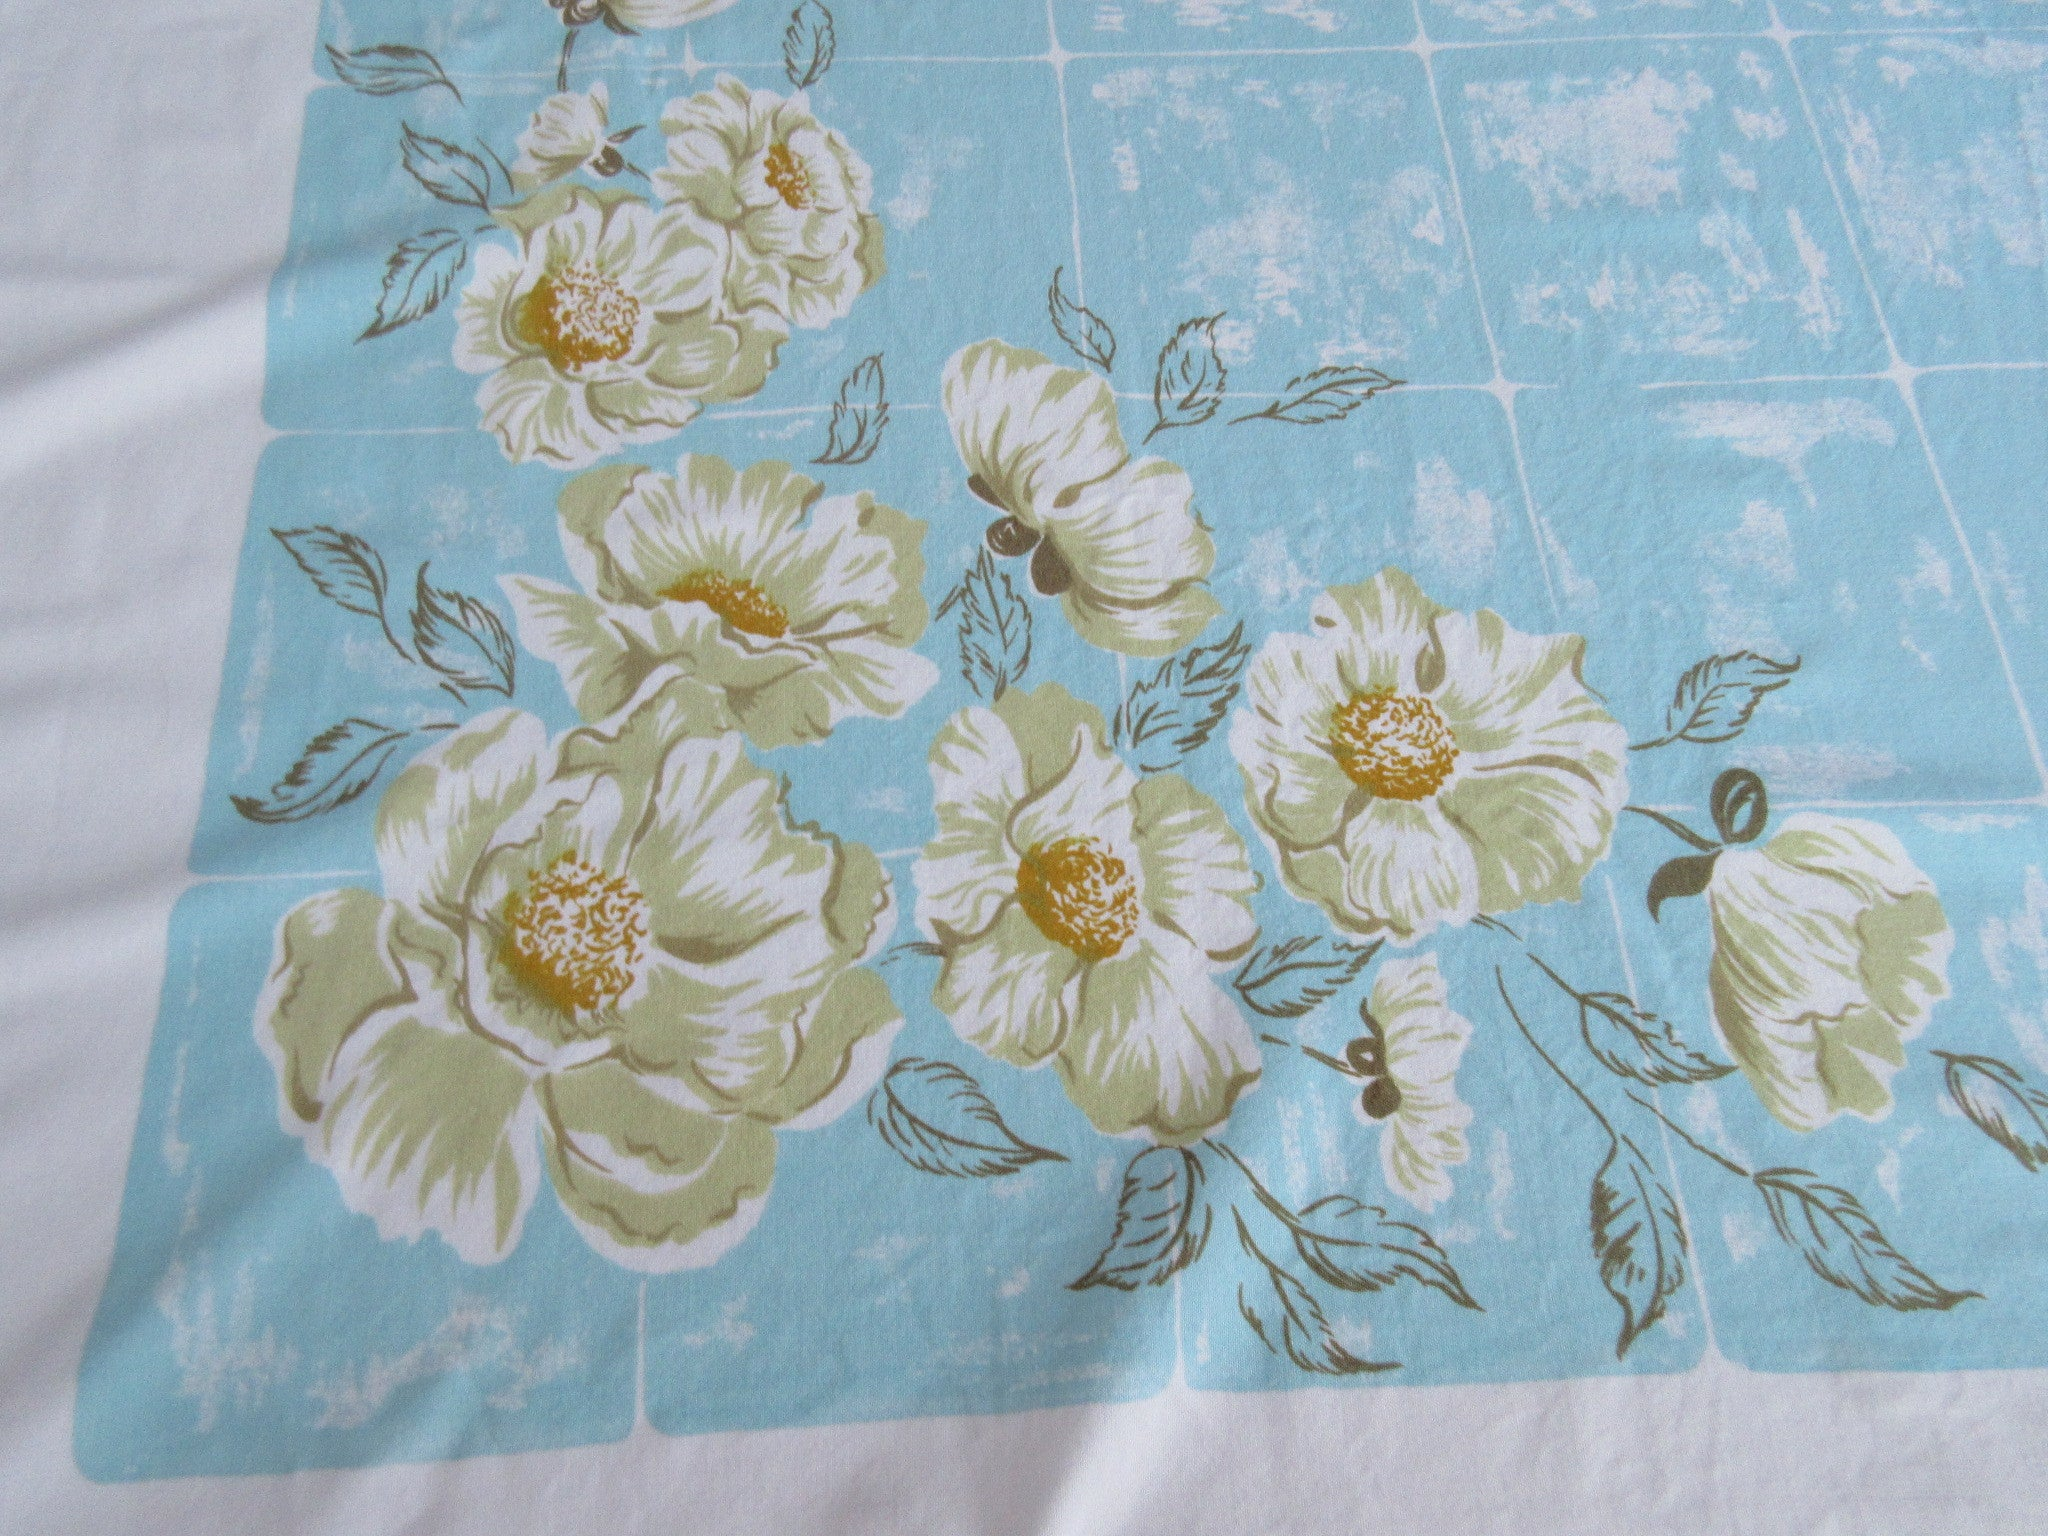 CHP Yellow Tan Wild Roses on Aqua Tiles Floral Vintage Printed Tablecloth (64 X 52)